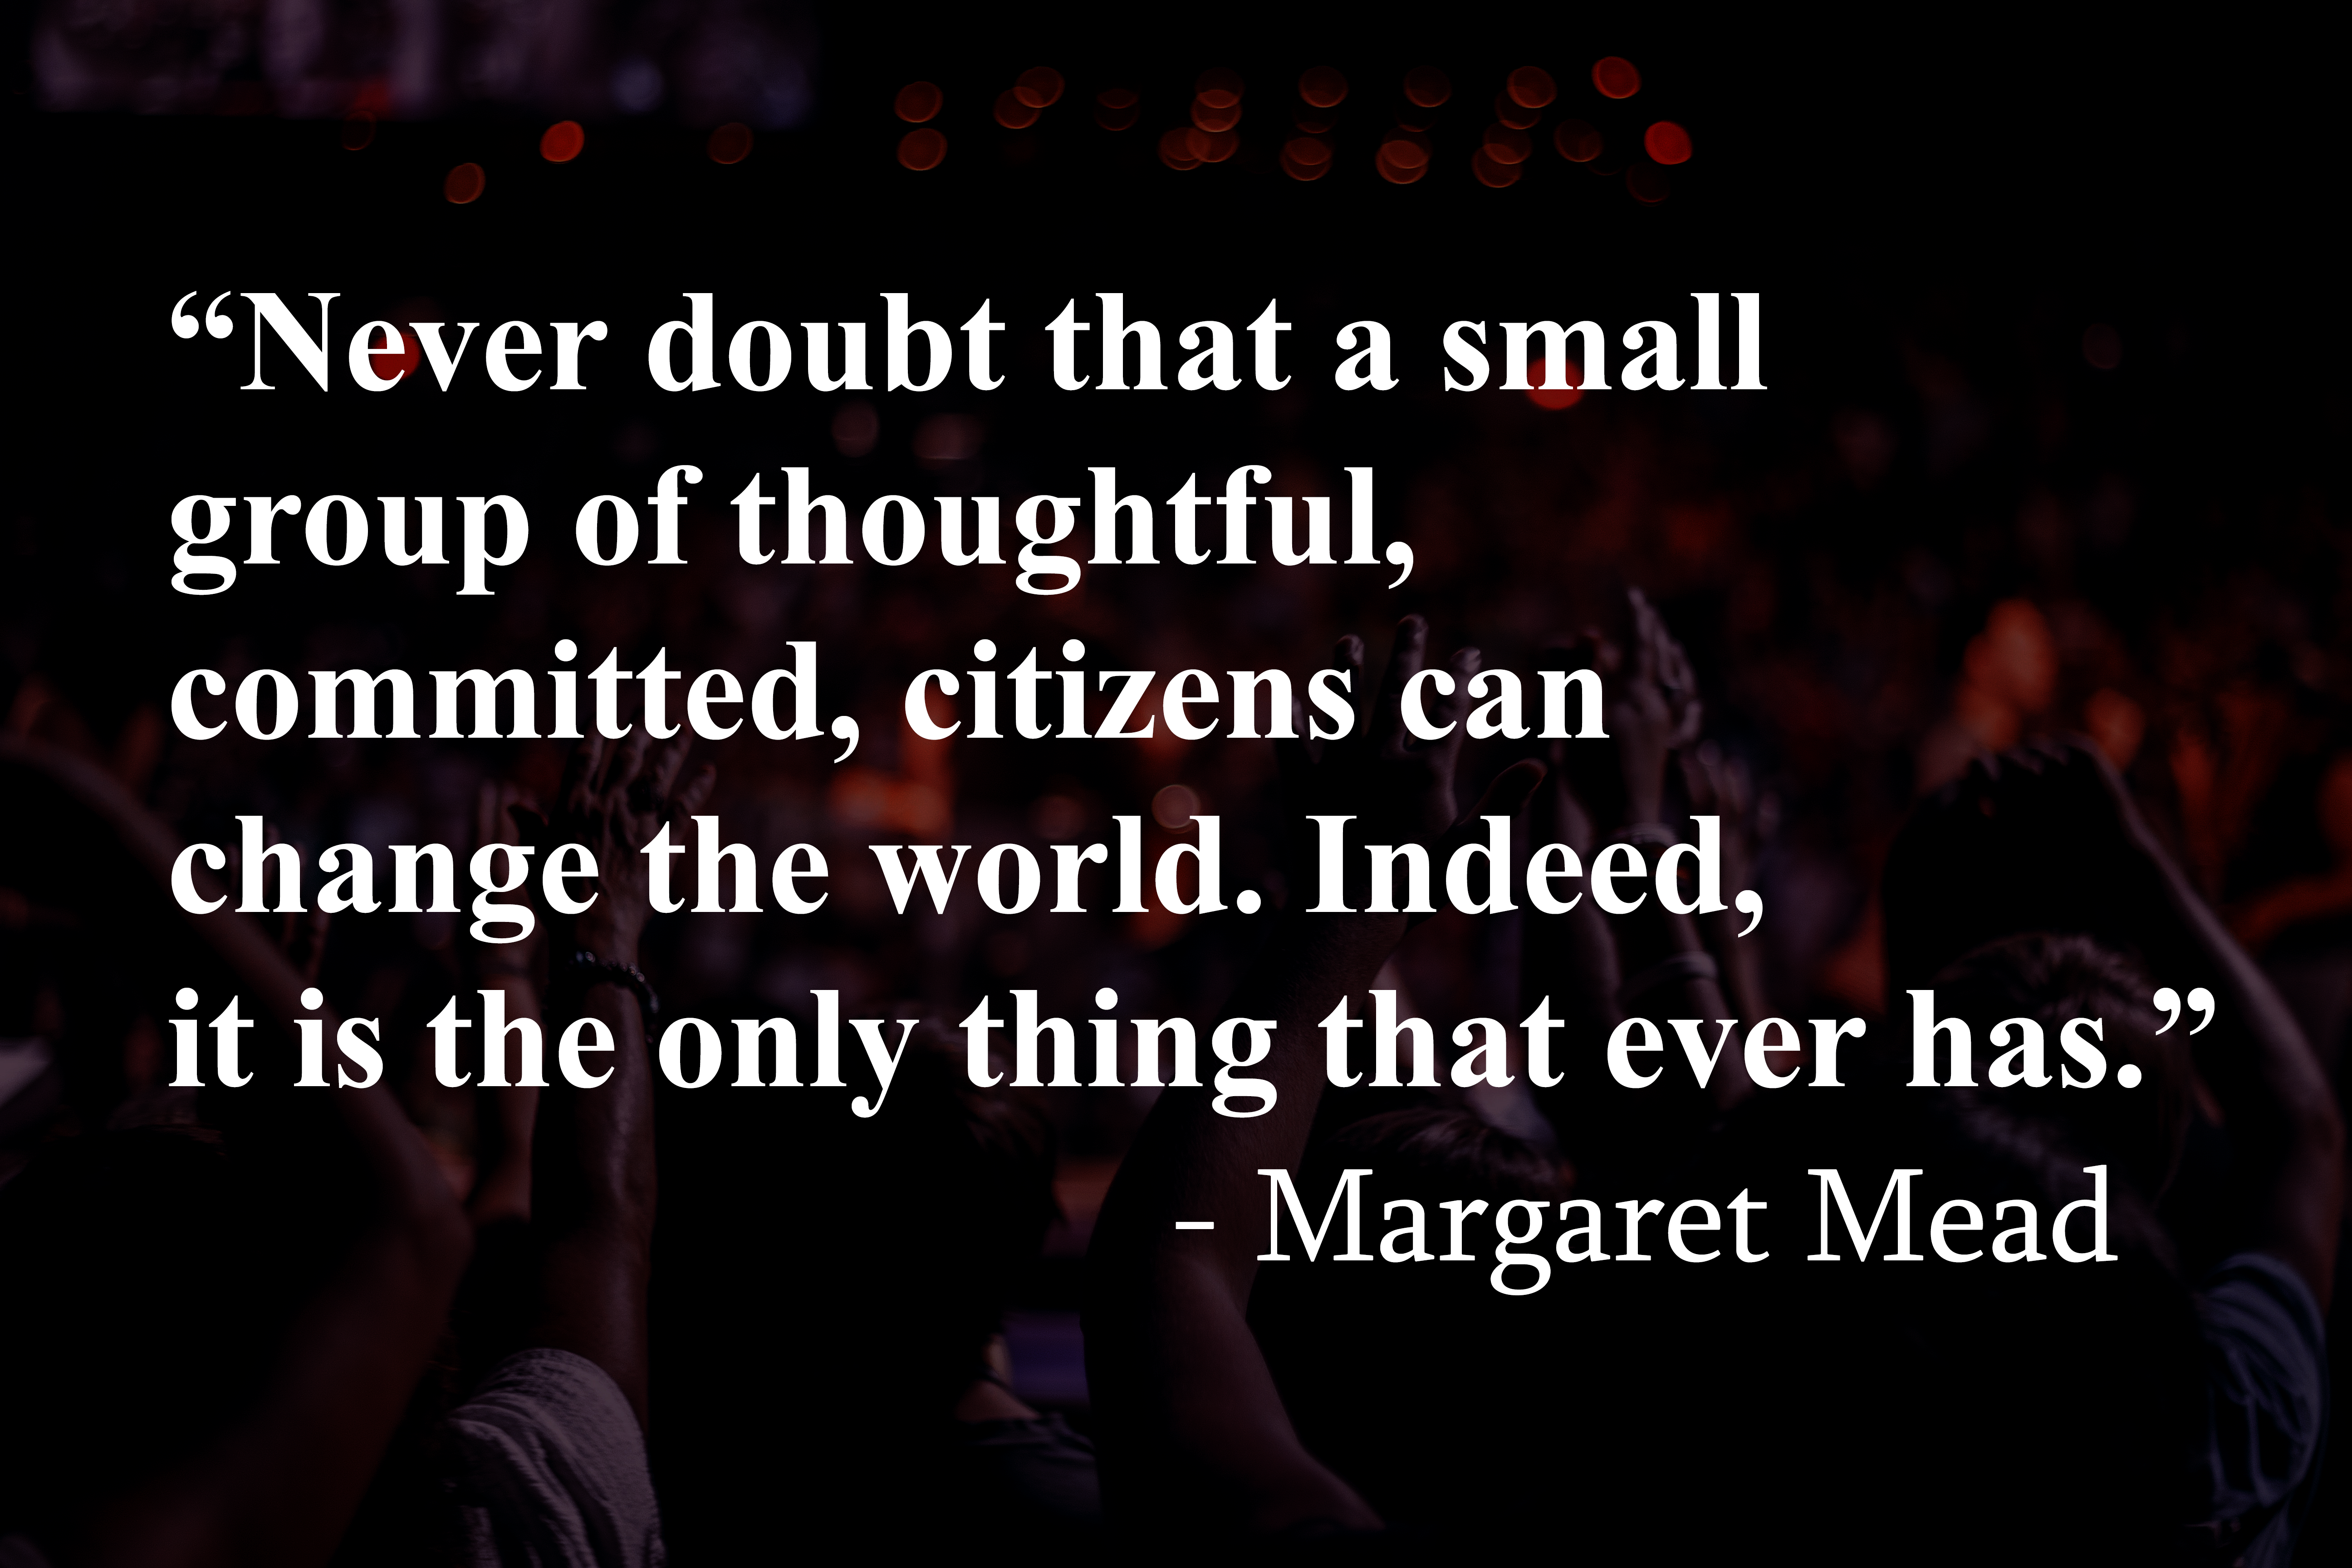 """""""Never doubt that a small group of thoughtful, committed, citizens can change the world. Indeed, it is the only thing that ever has."""" – Margaret Mead [5184 x 3456]"""